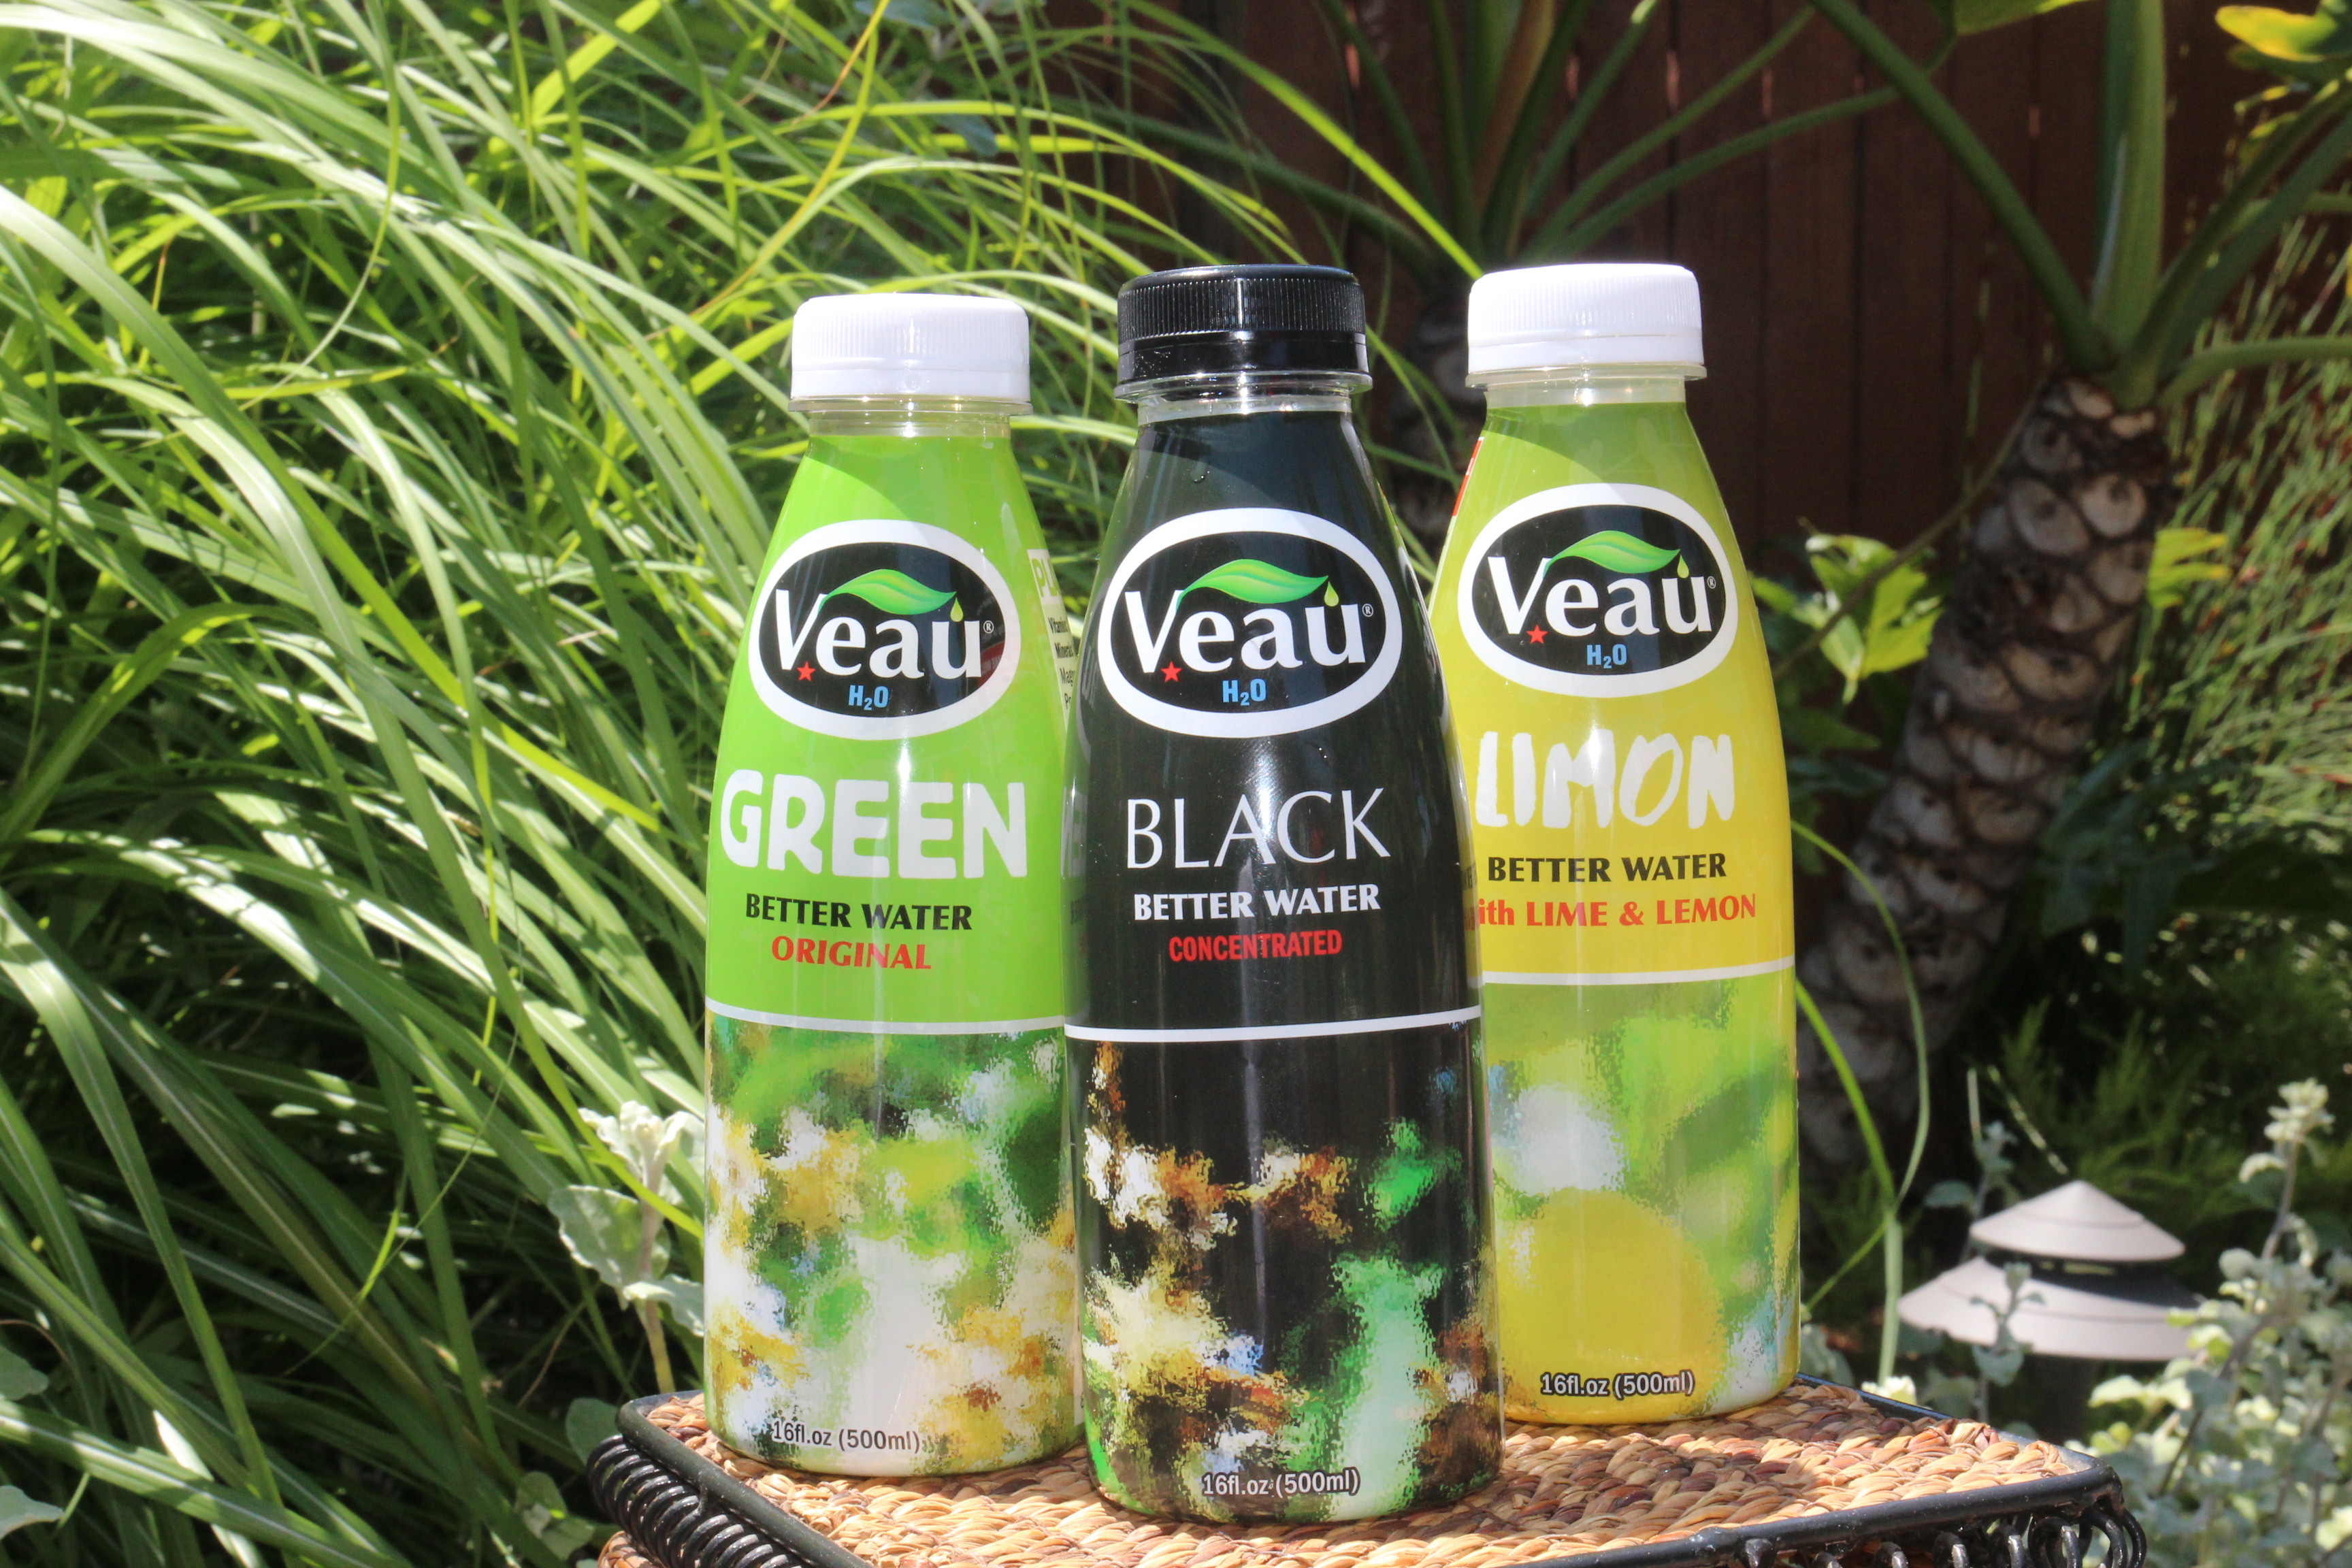 8-Veau-Drinks-Grass